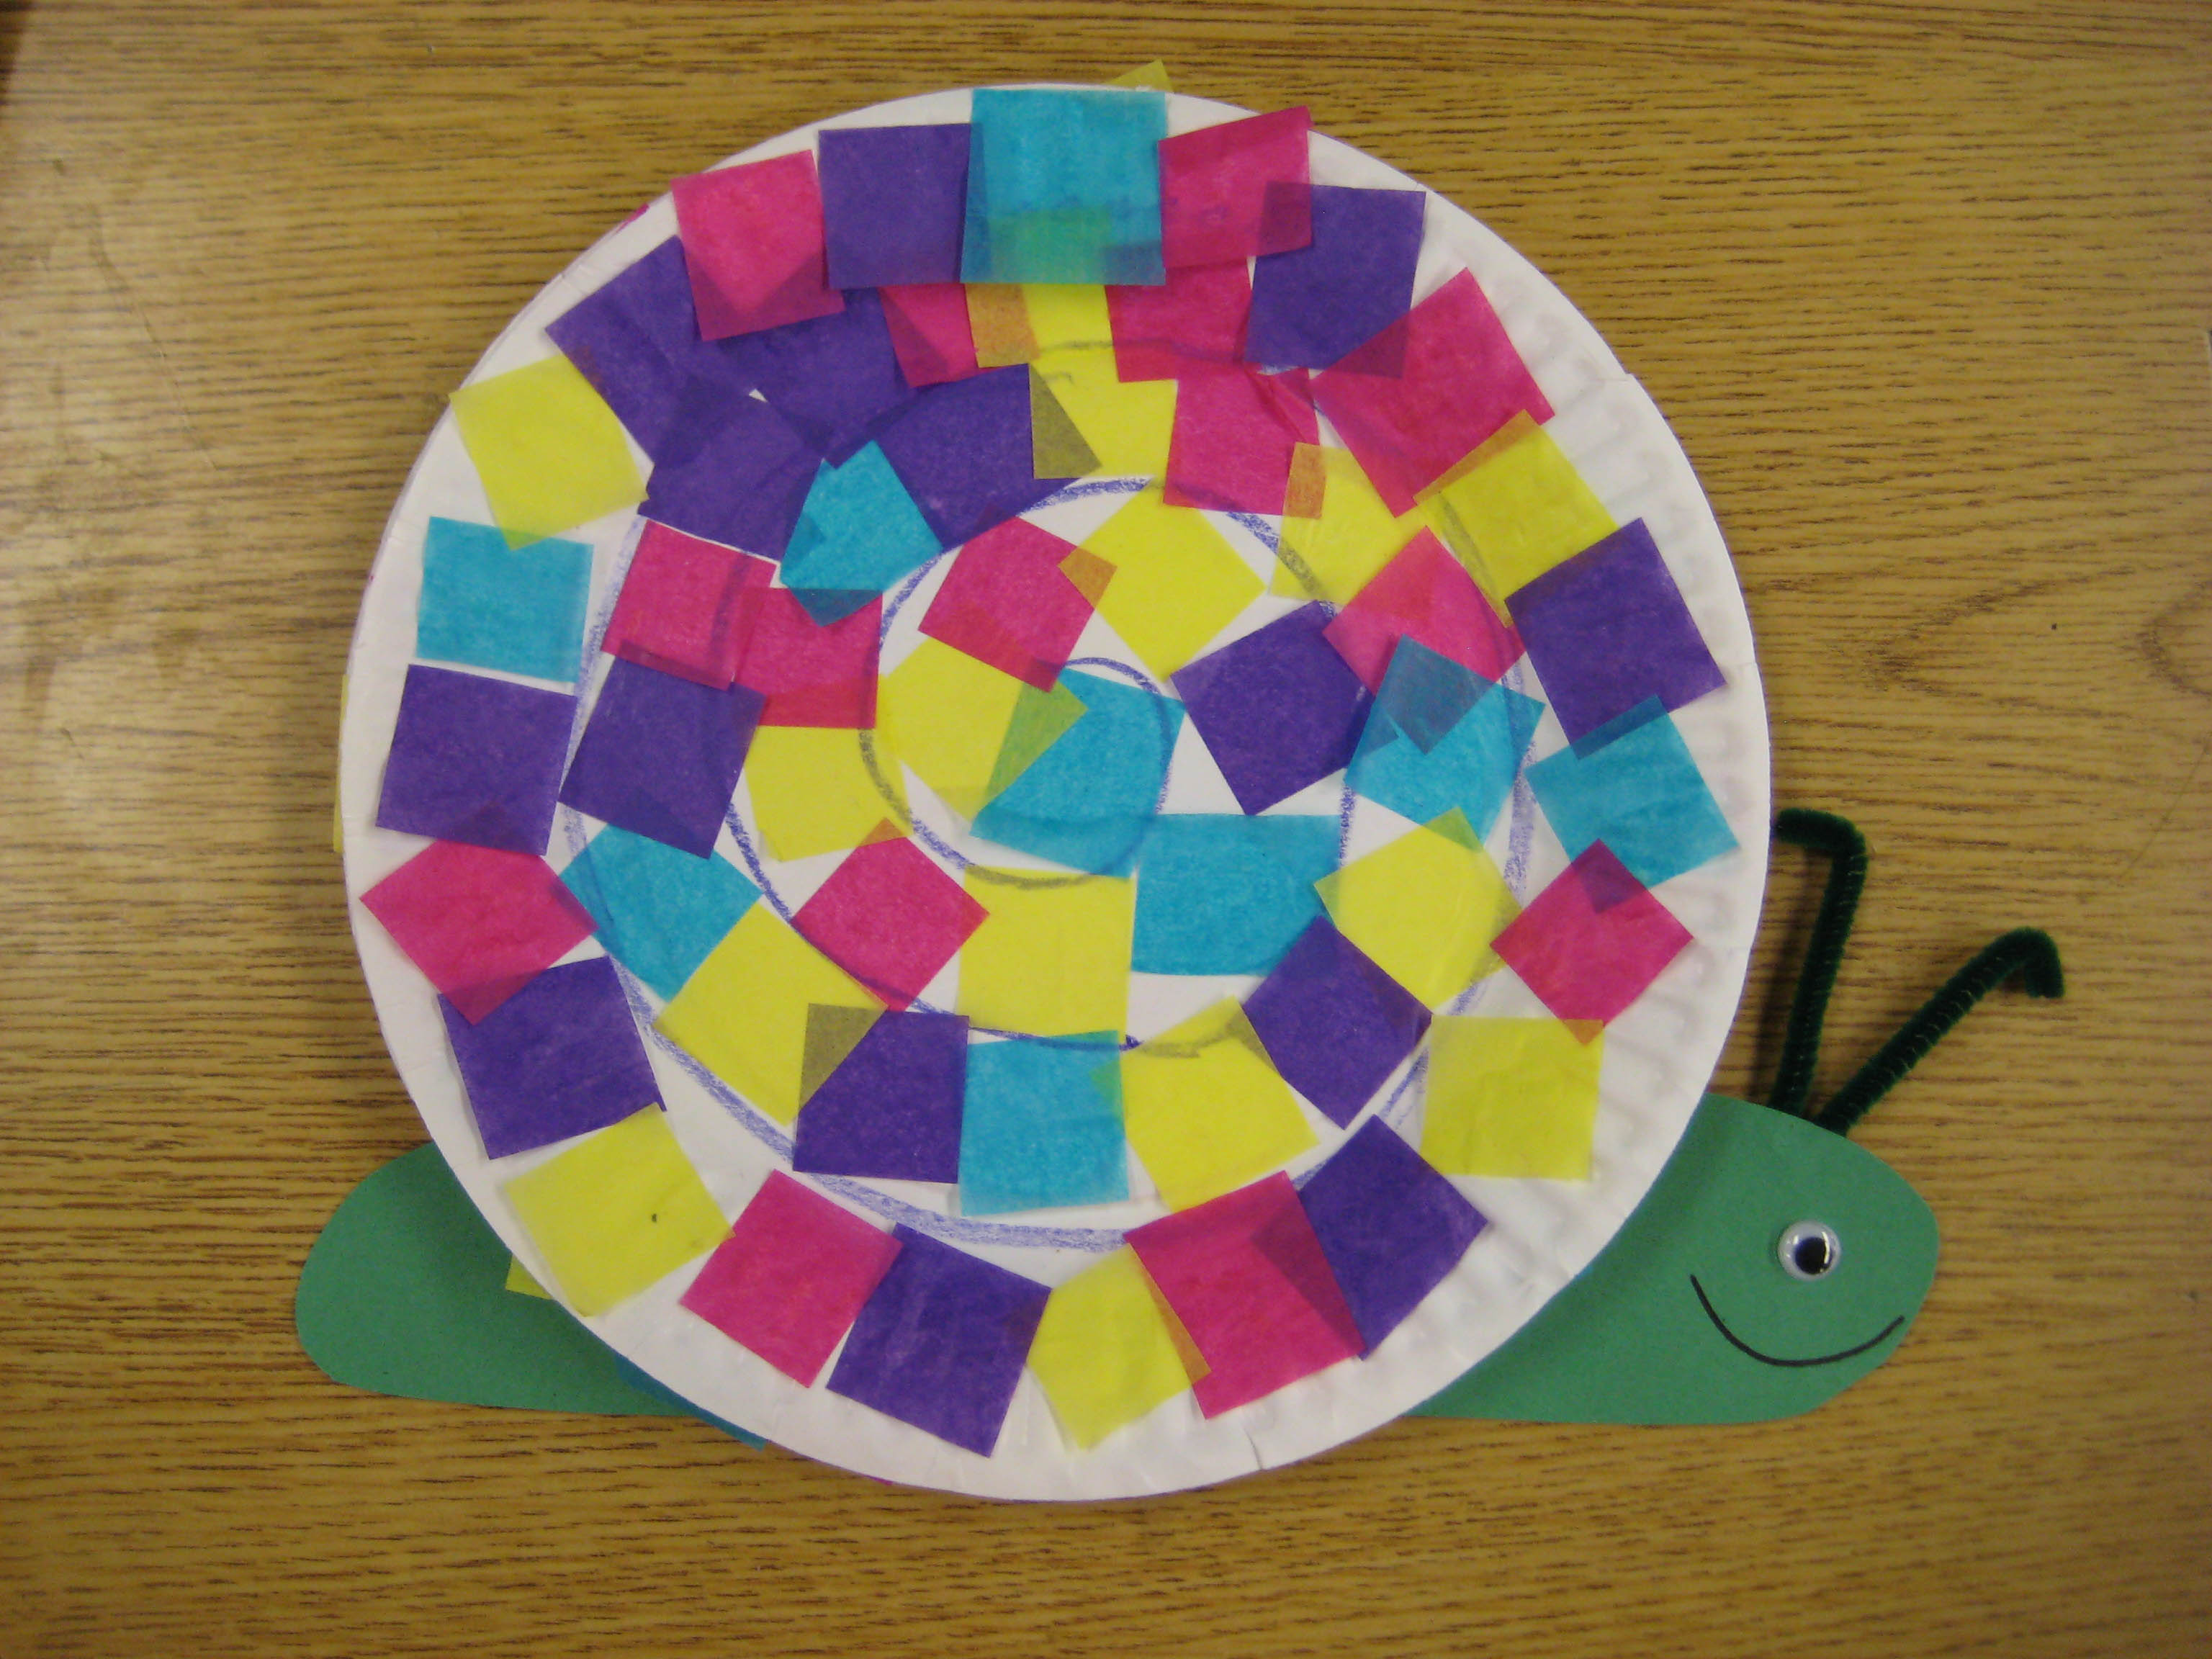 A Cute Colorful Craft That Your Students Will Love To Create For Spring